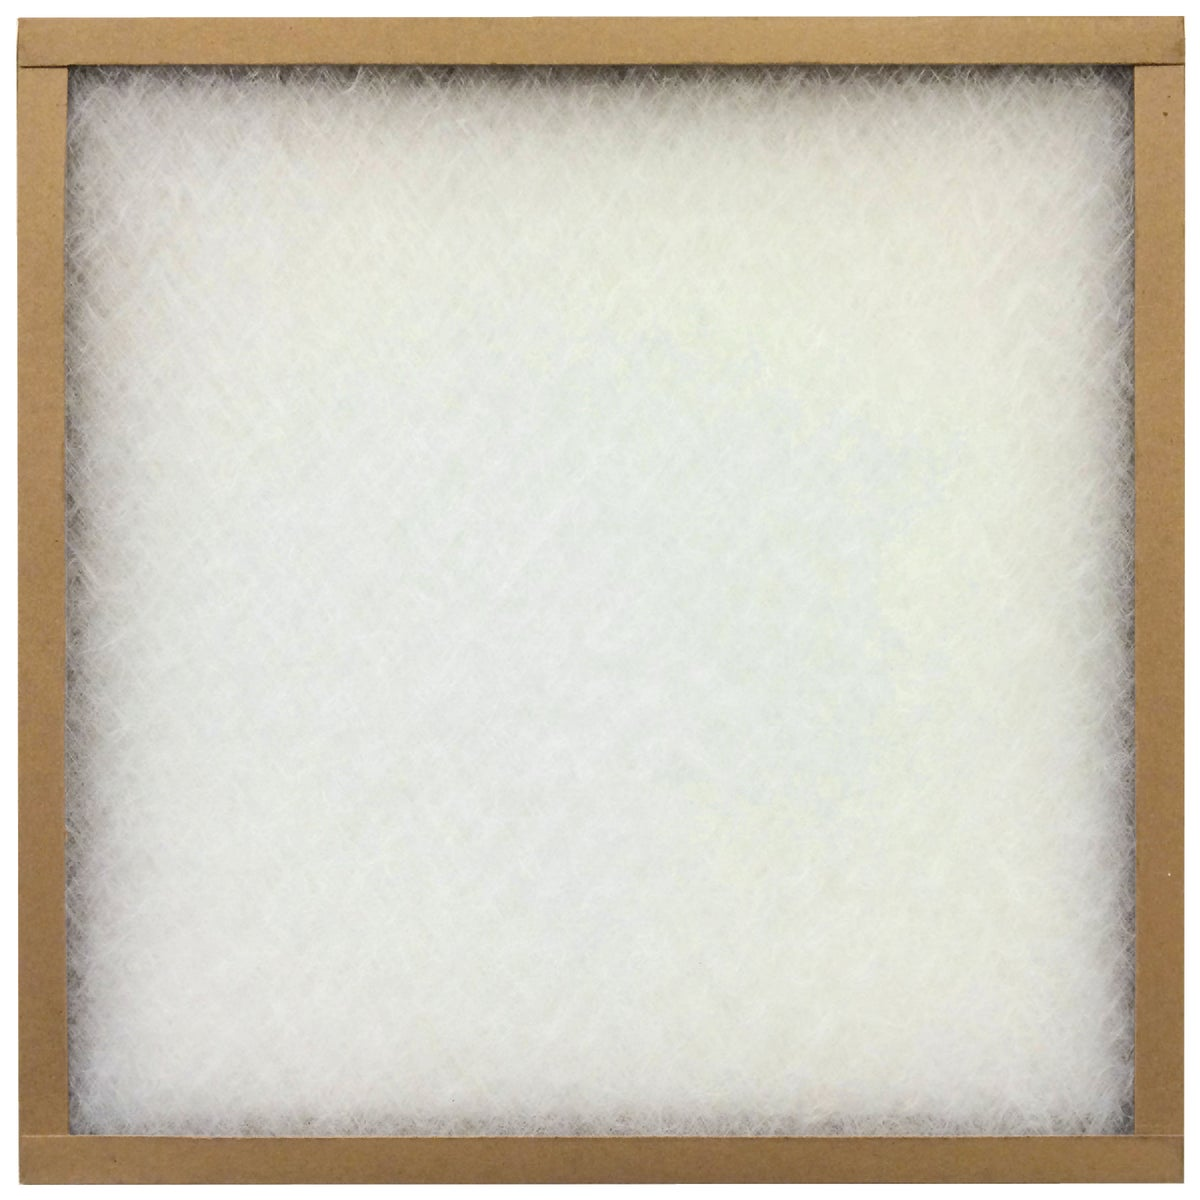 16X24X1 FBRGL AIR FILTER - 10055.011624 by Flanders Corp